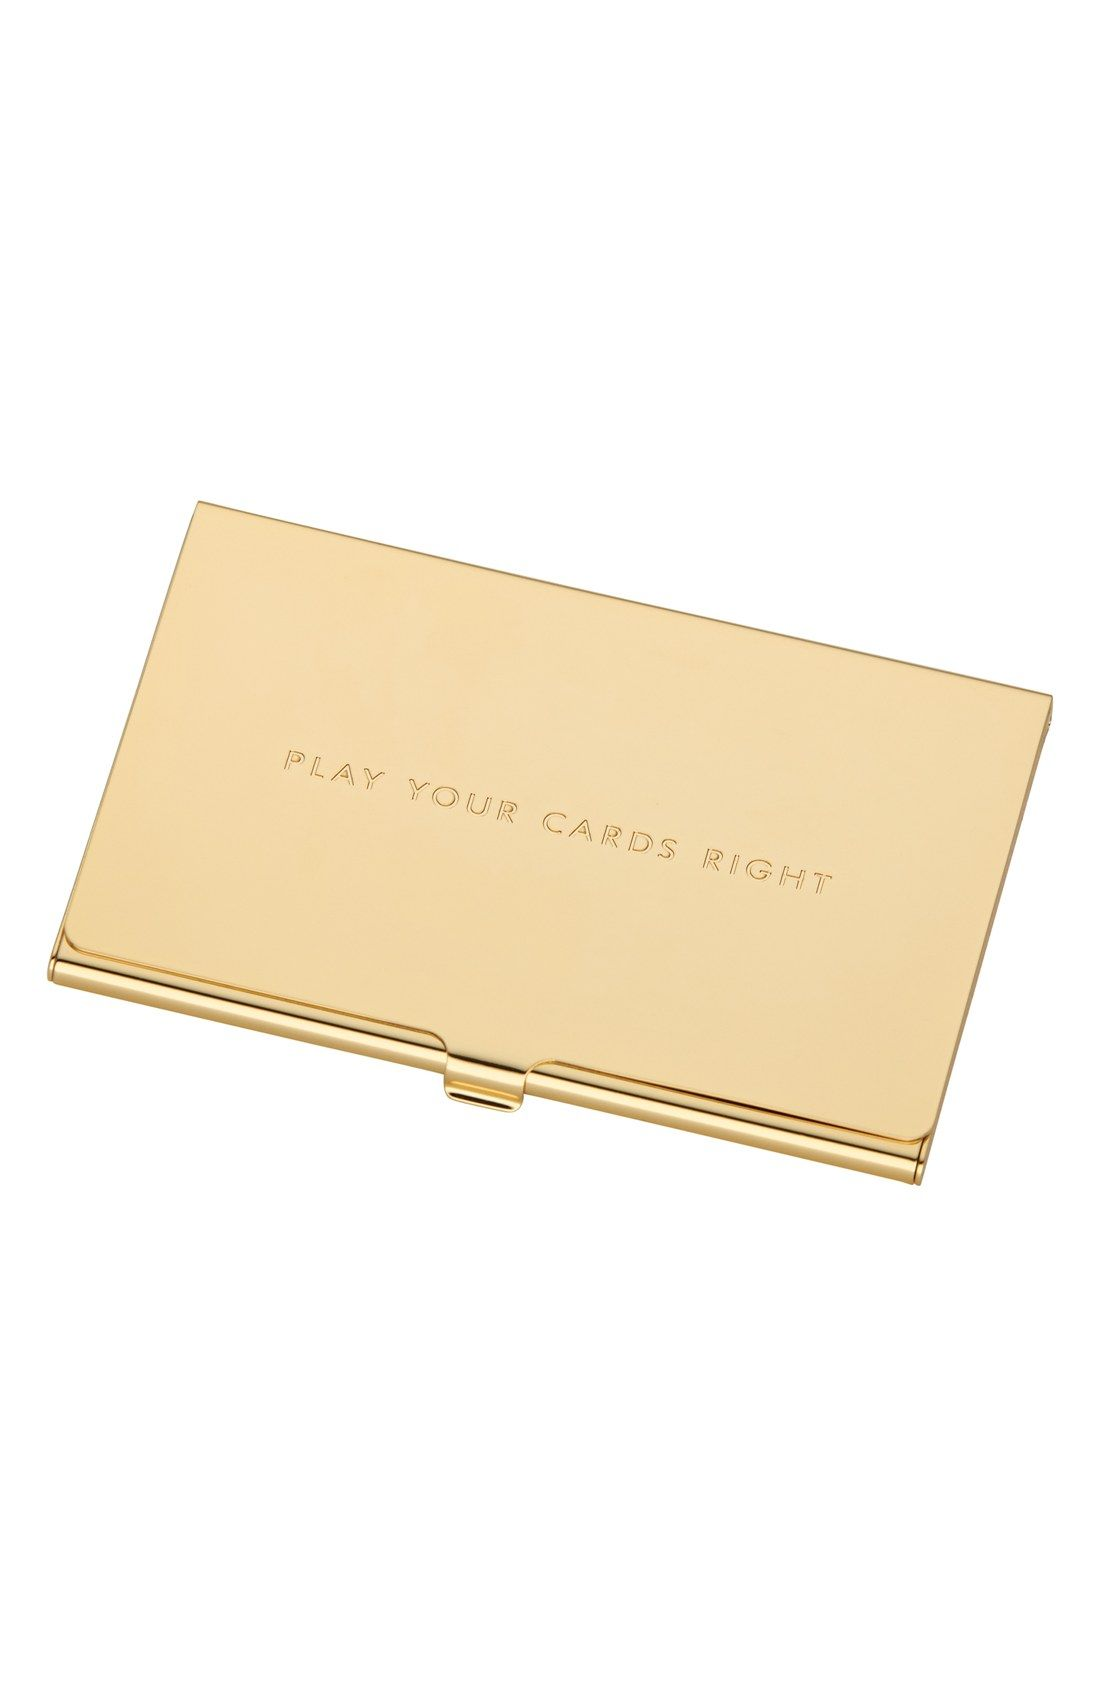 Kate Spade New York Cardholder Nordstrom Chambre D Amour Castorama Accoutrement